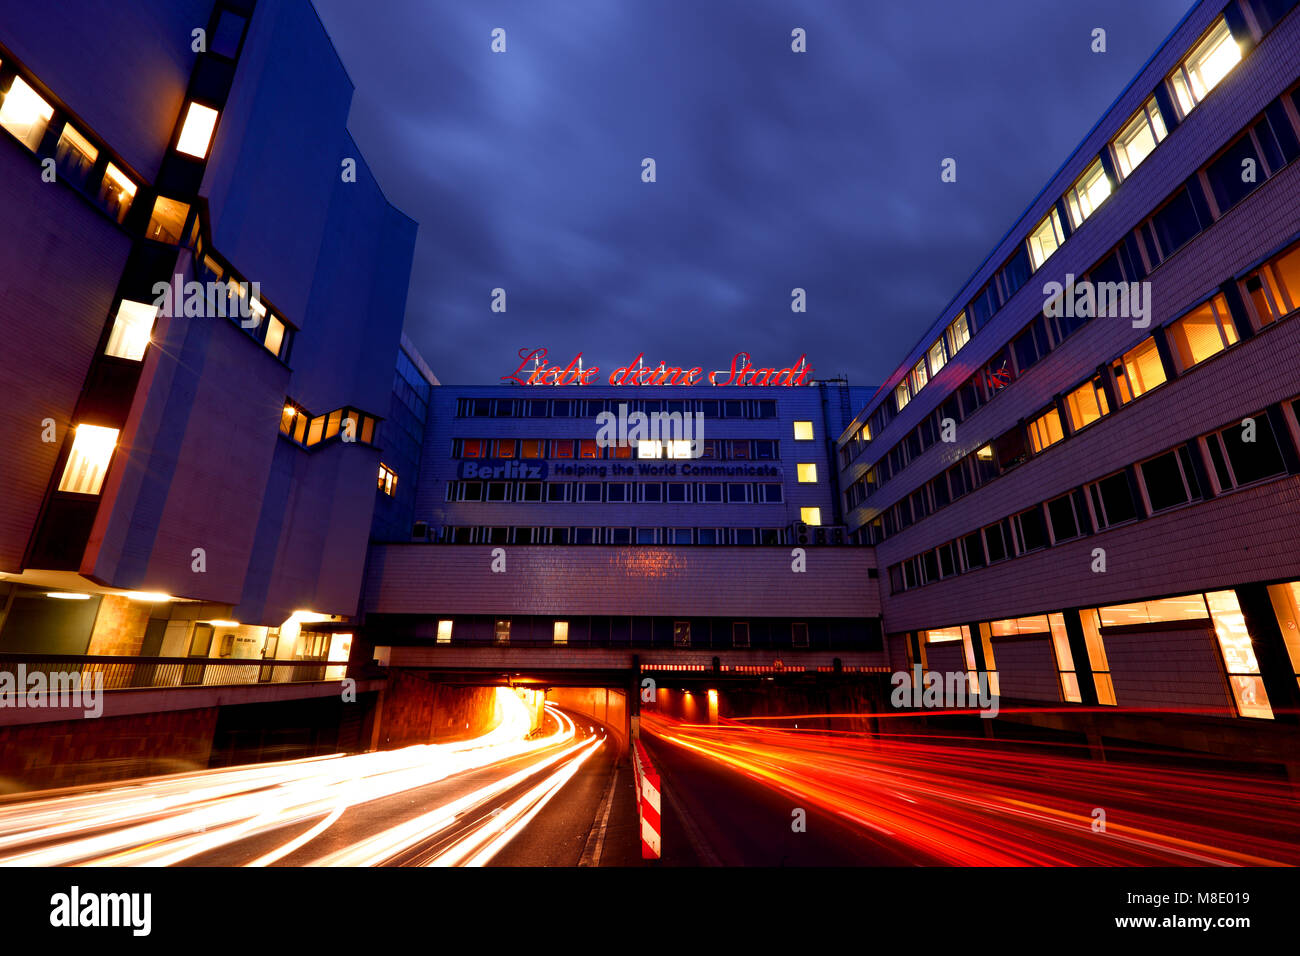 North-South throughway in Cologne, Germany, at night. Neon sign 'Liebe deine Stadt' ('Love your city') - Stock Image